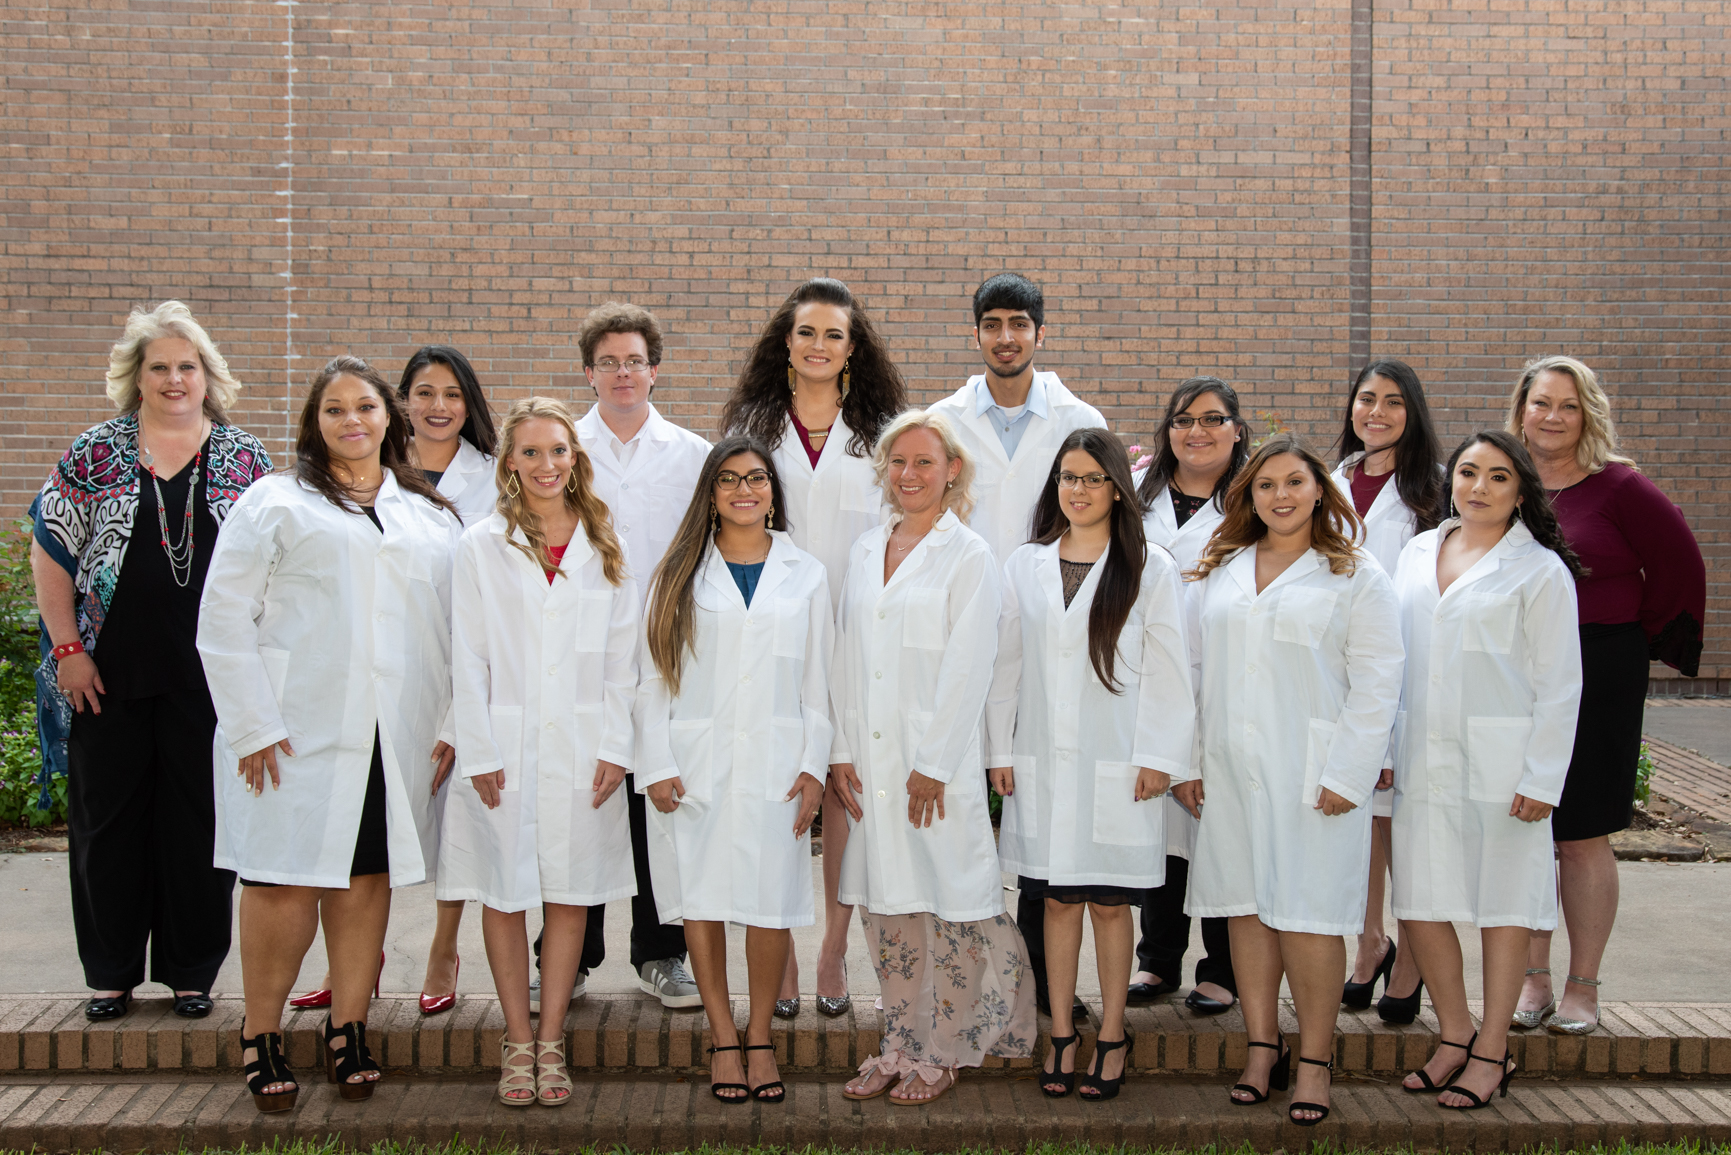 RADIOLOGIC TECHNOLOGY PROGRAM GRADUATES 13